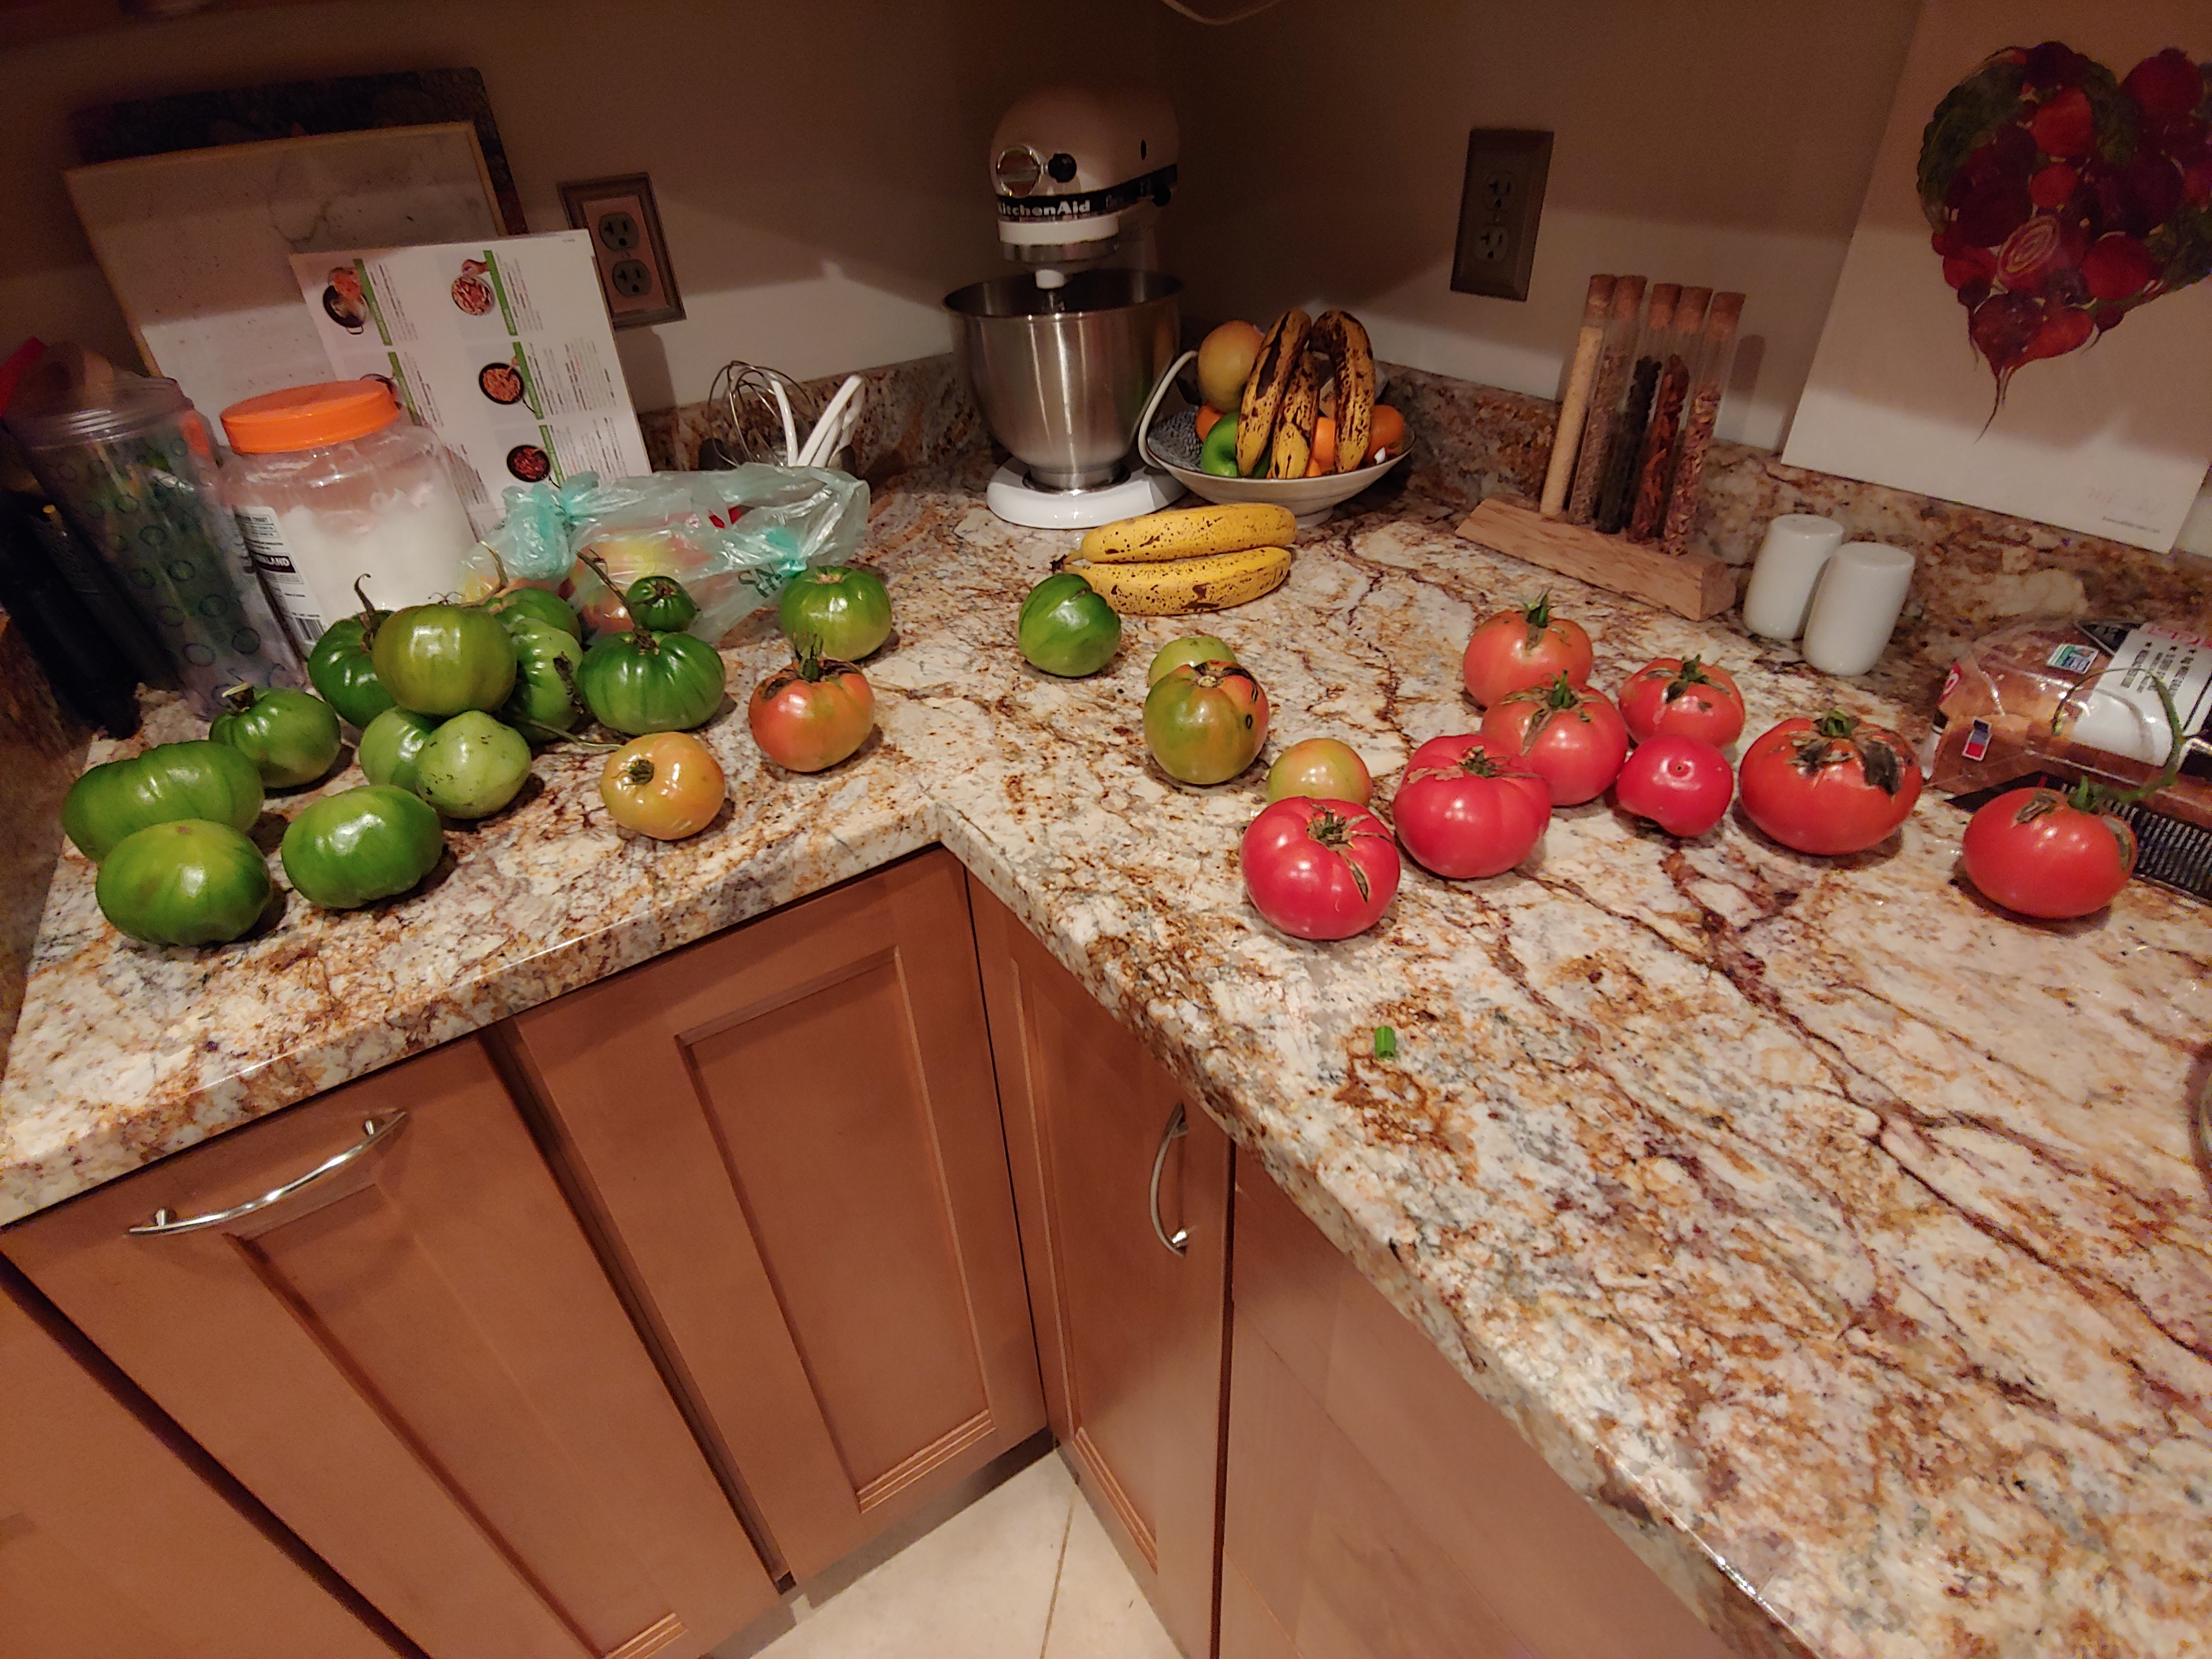 Picked tomatoes on counter